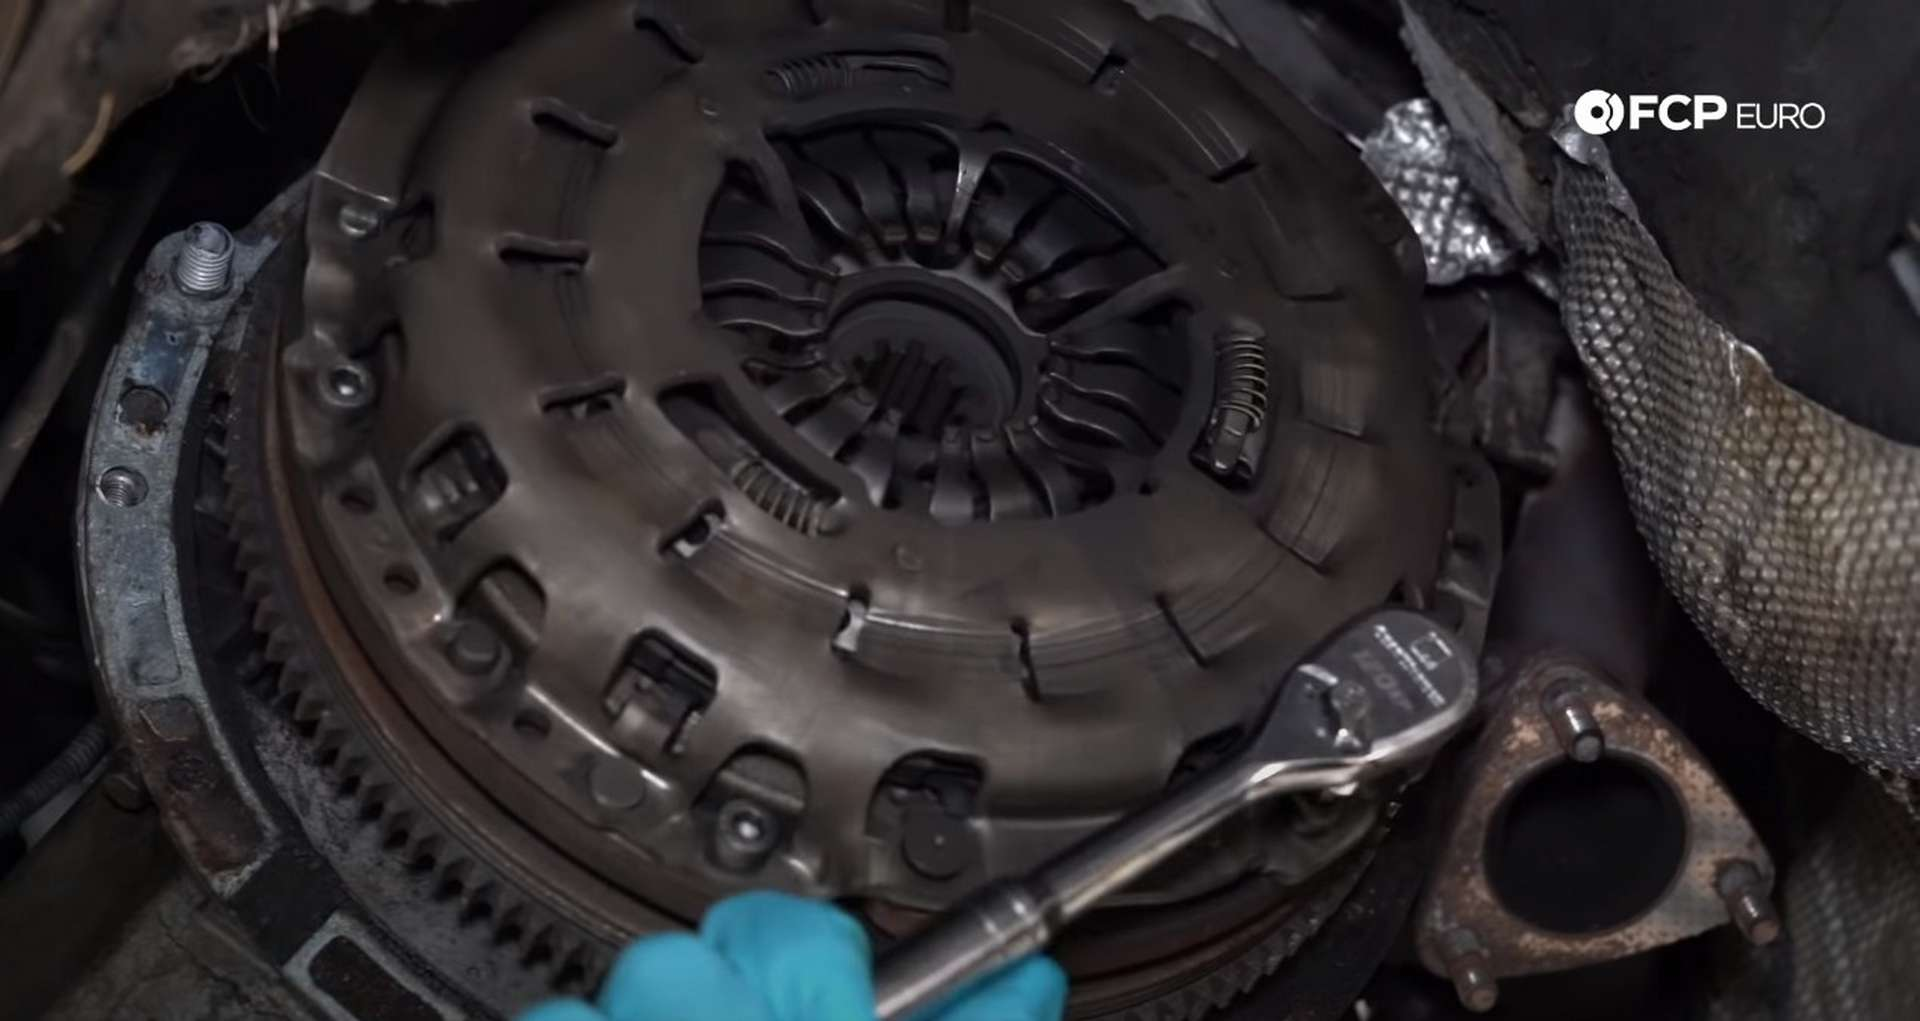 How To Replace The Clutch, Flywheel, & Rear Main Seal On A BMW E46